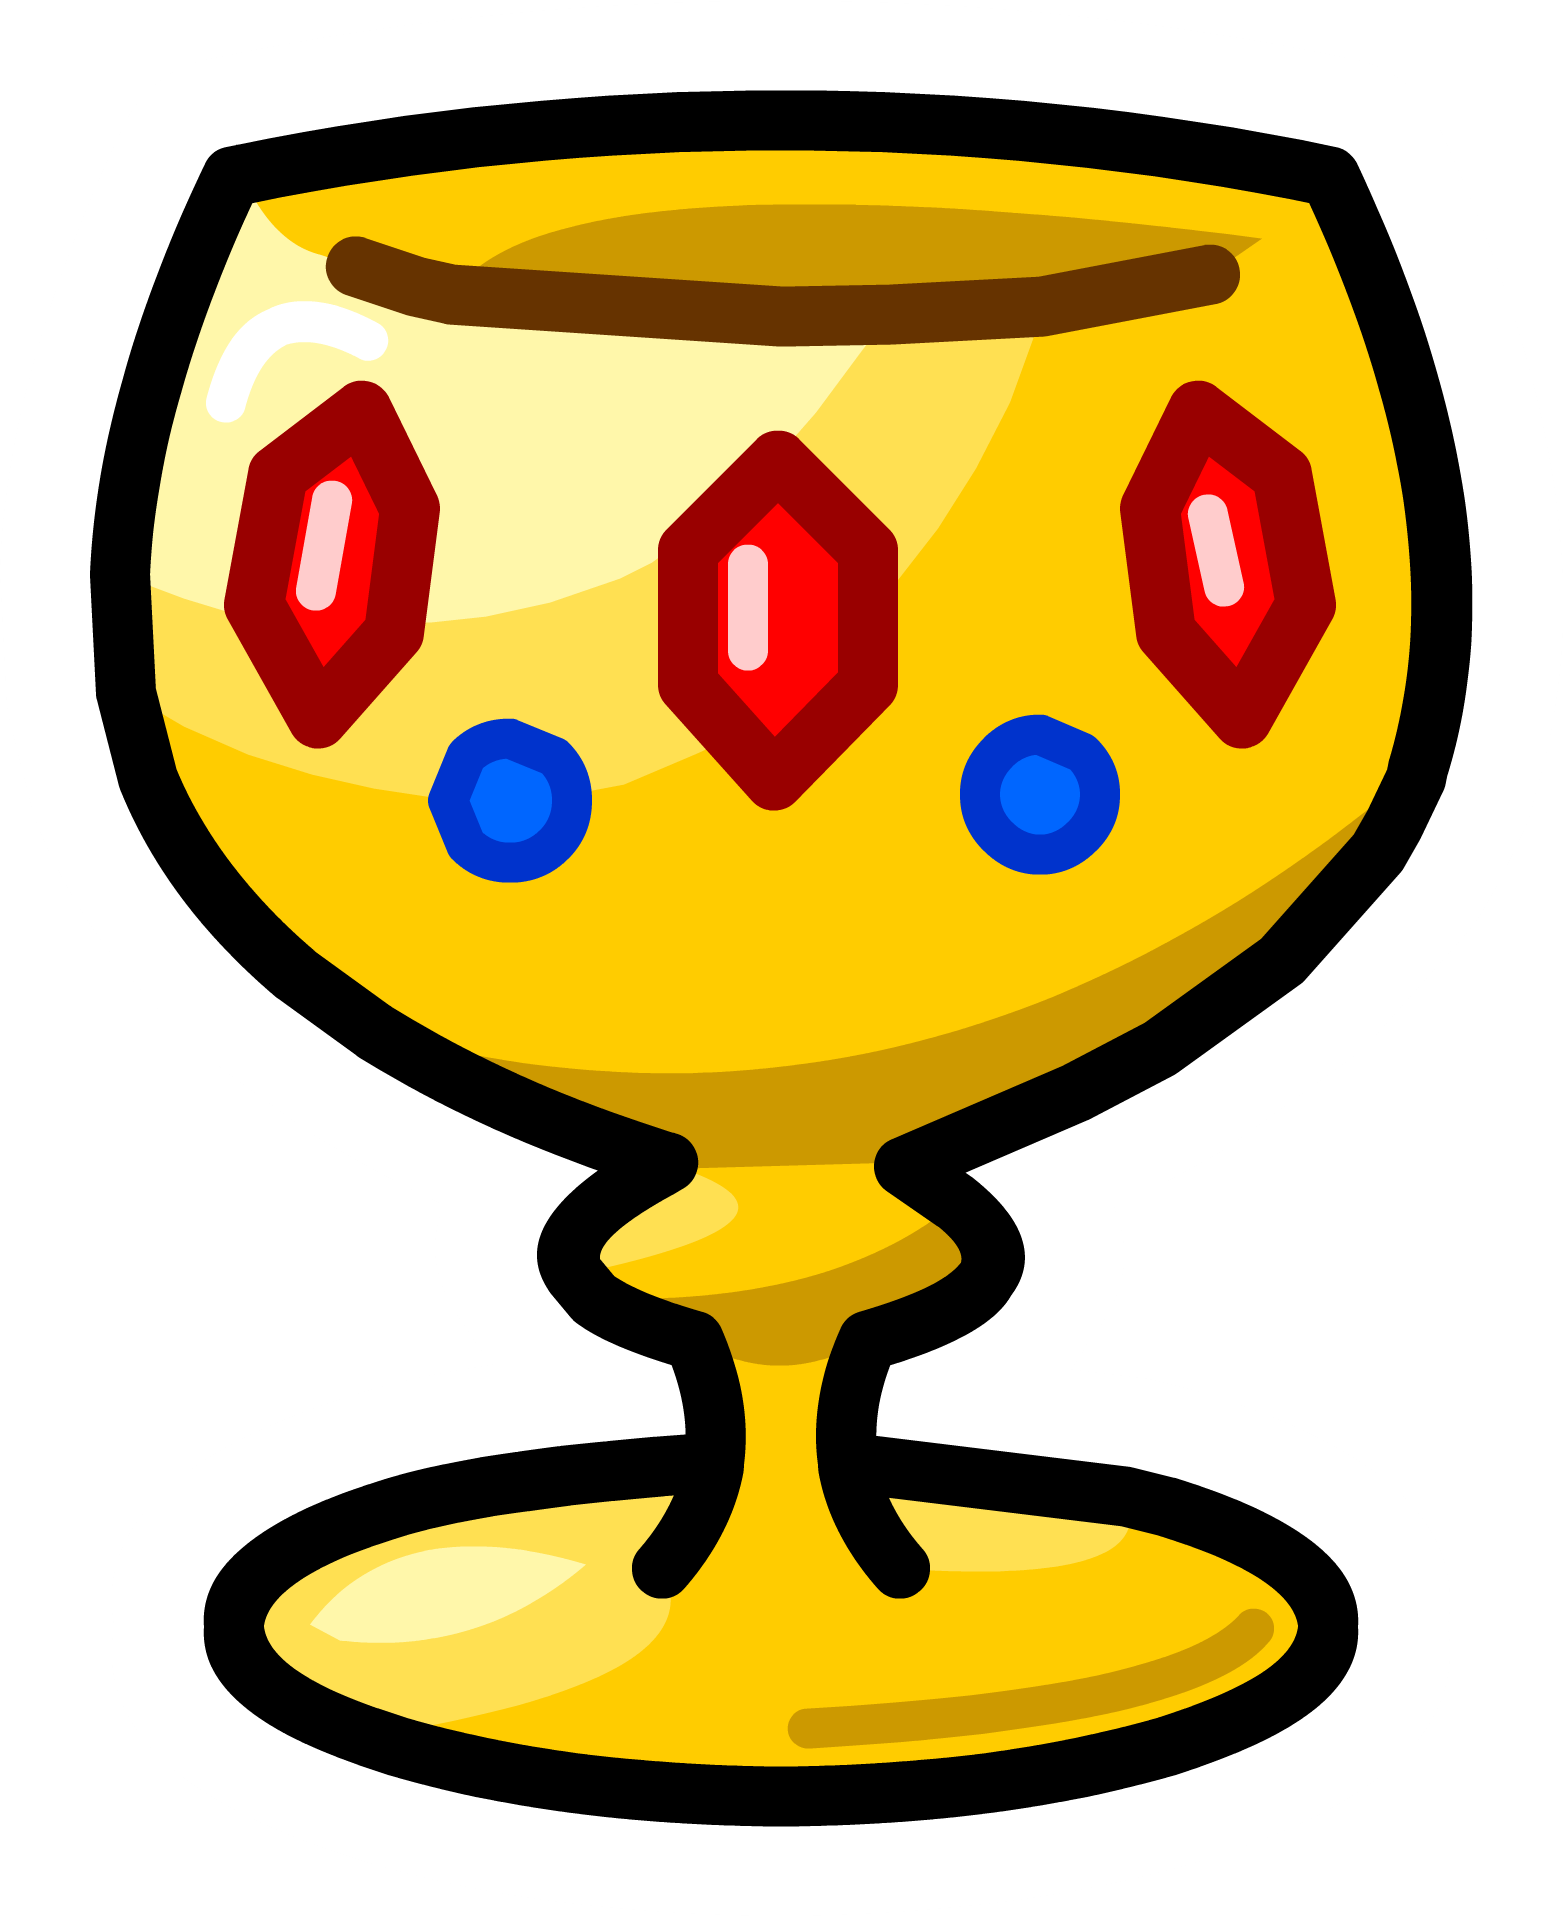 Goblet Pin - Club Penguin Wiki - The free, editable encyclopedia about ...